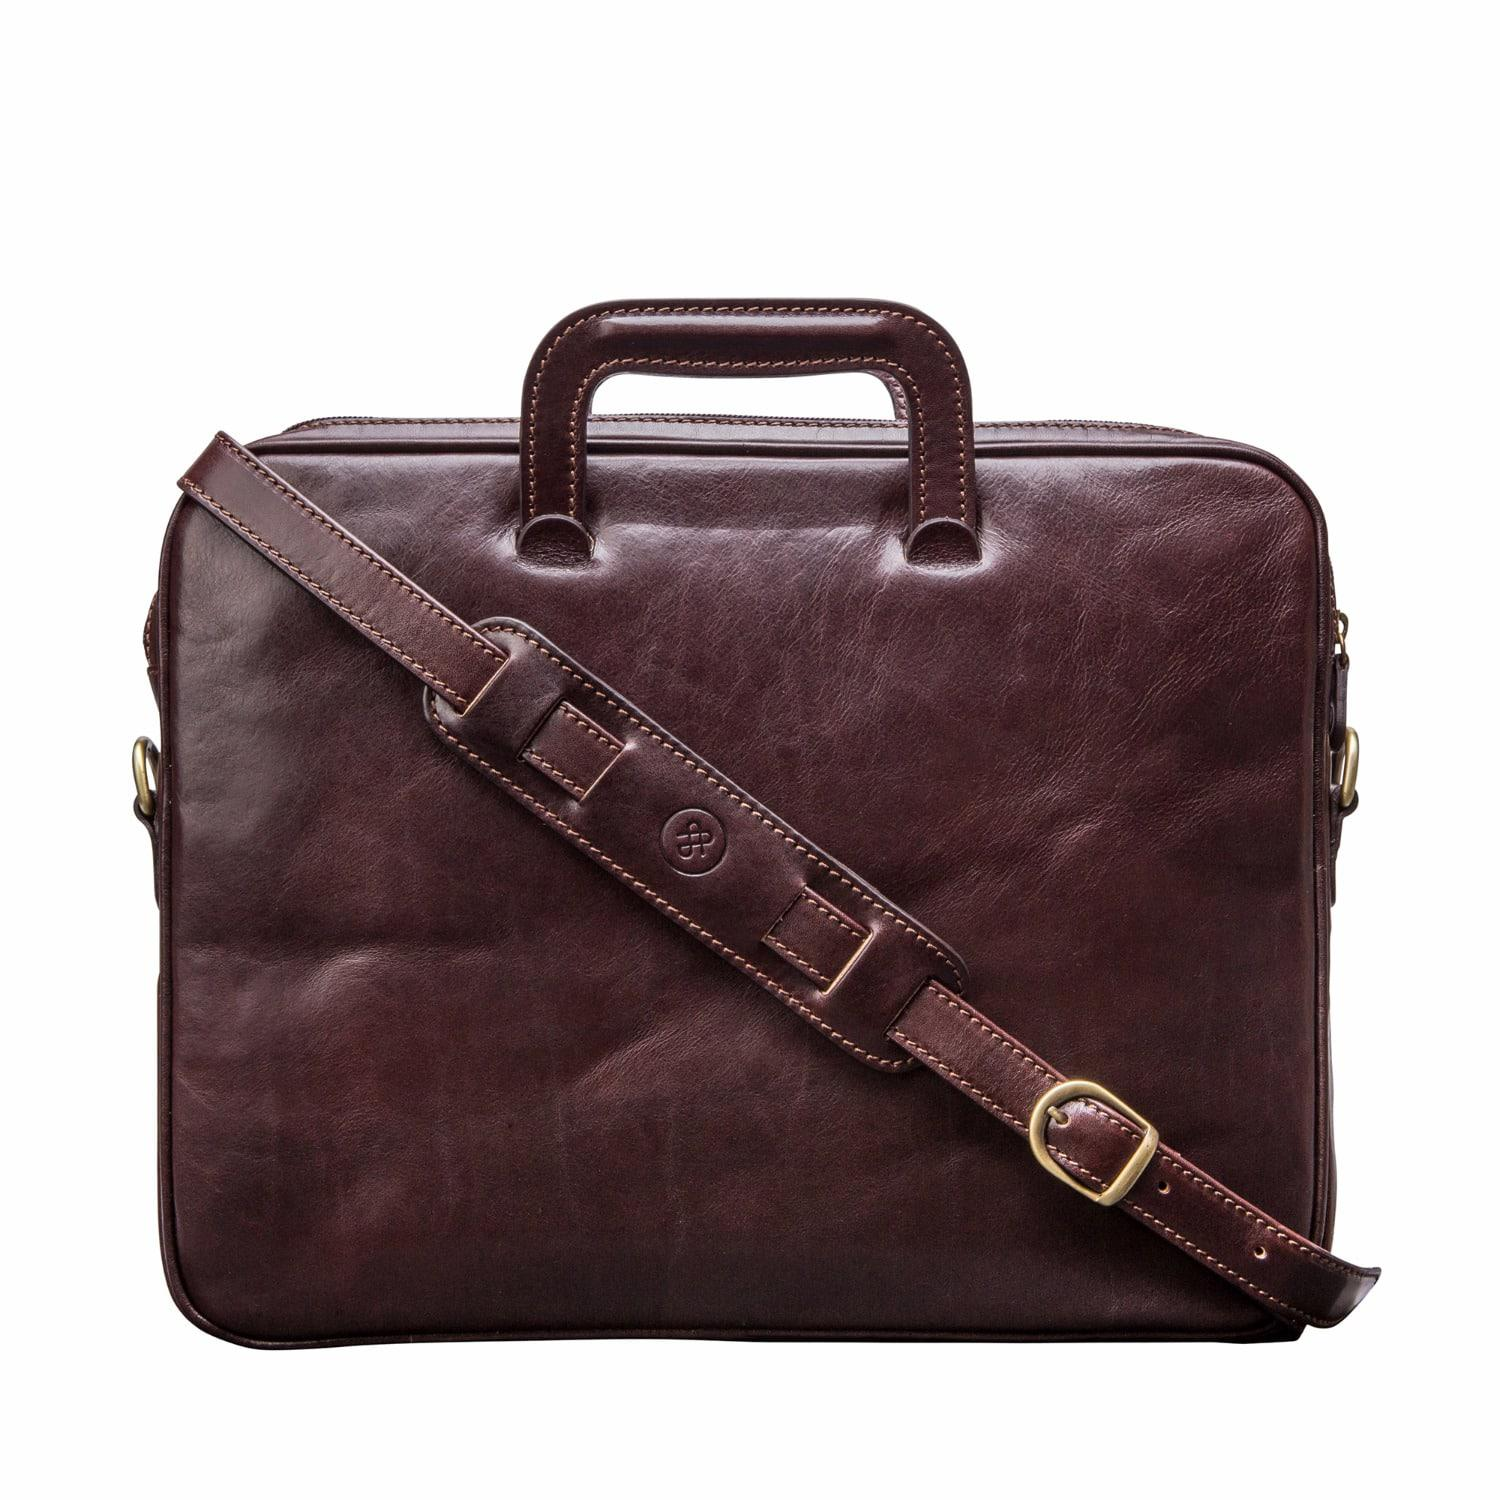 lyst maxwell scott bags tutti handcrafted fine leather document case chocolate brown in brown. Black Bedroom Furniture Sets. Home Design Ideas